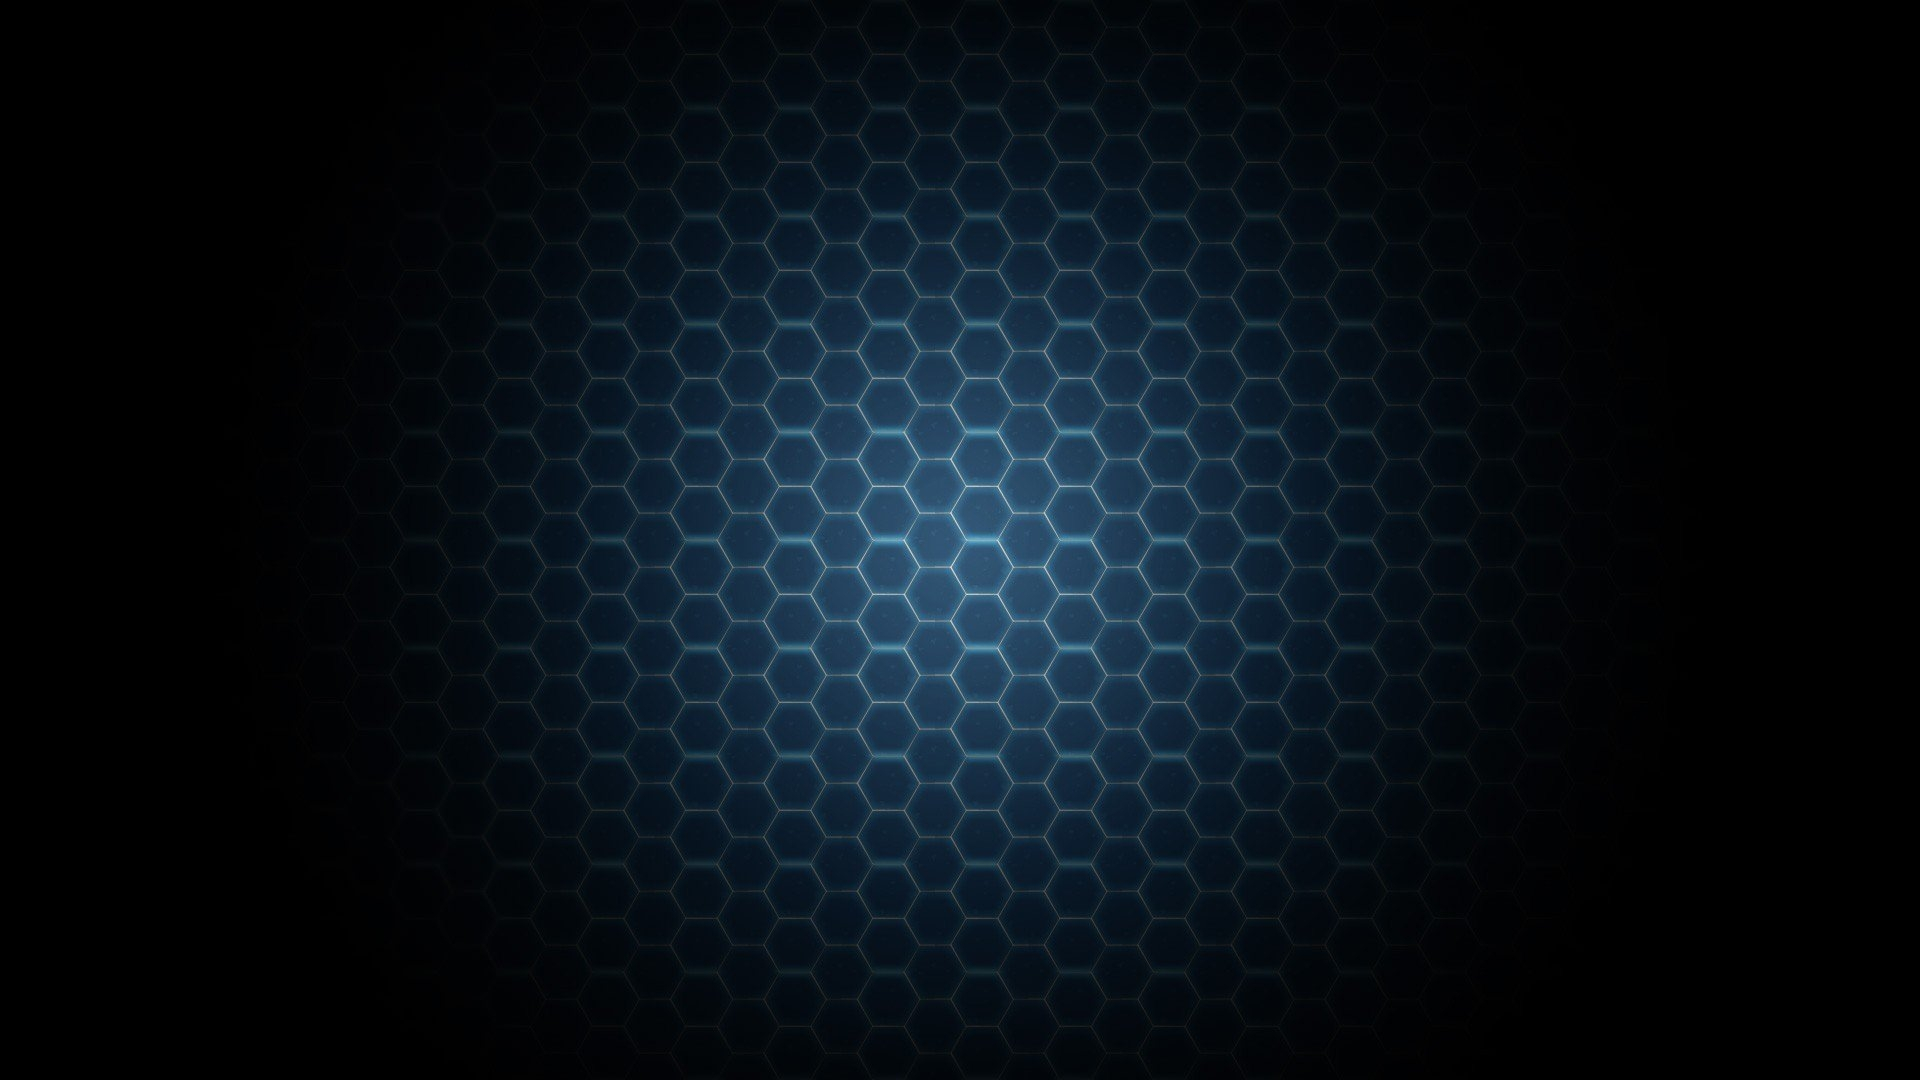 Free Dark Hexagon Pattern For Download